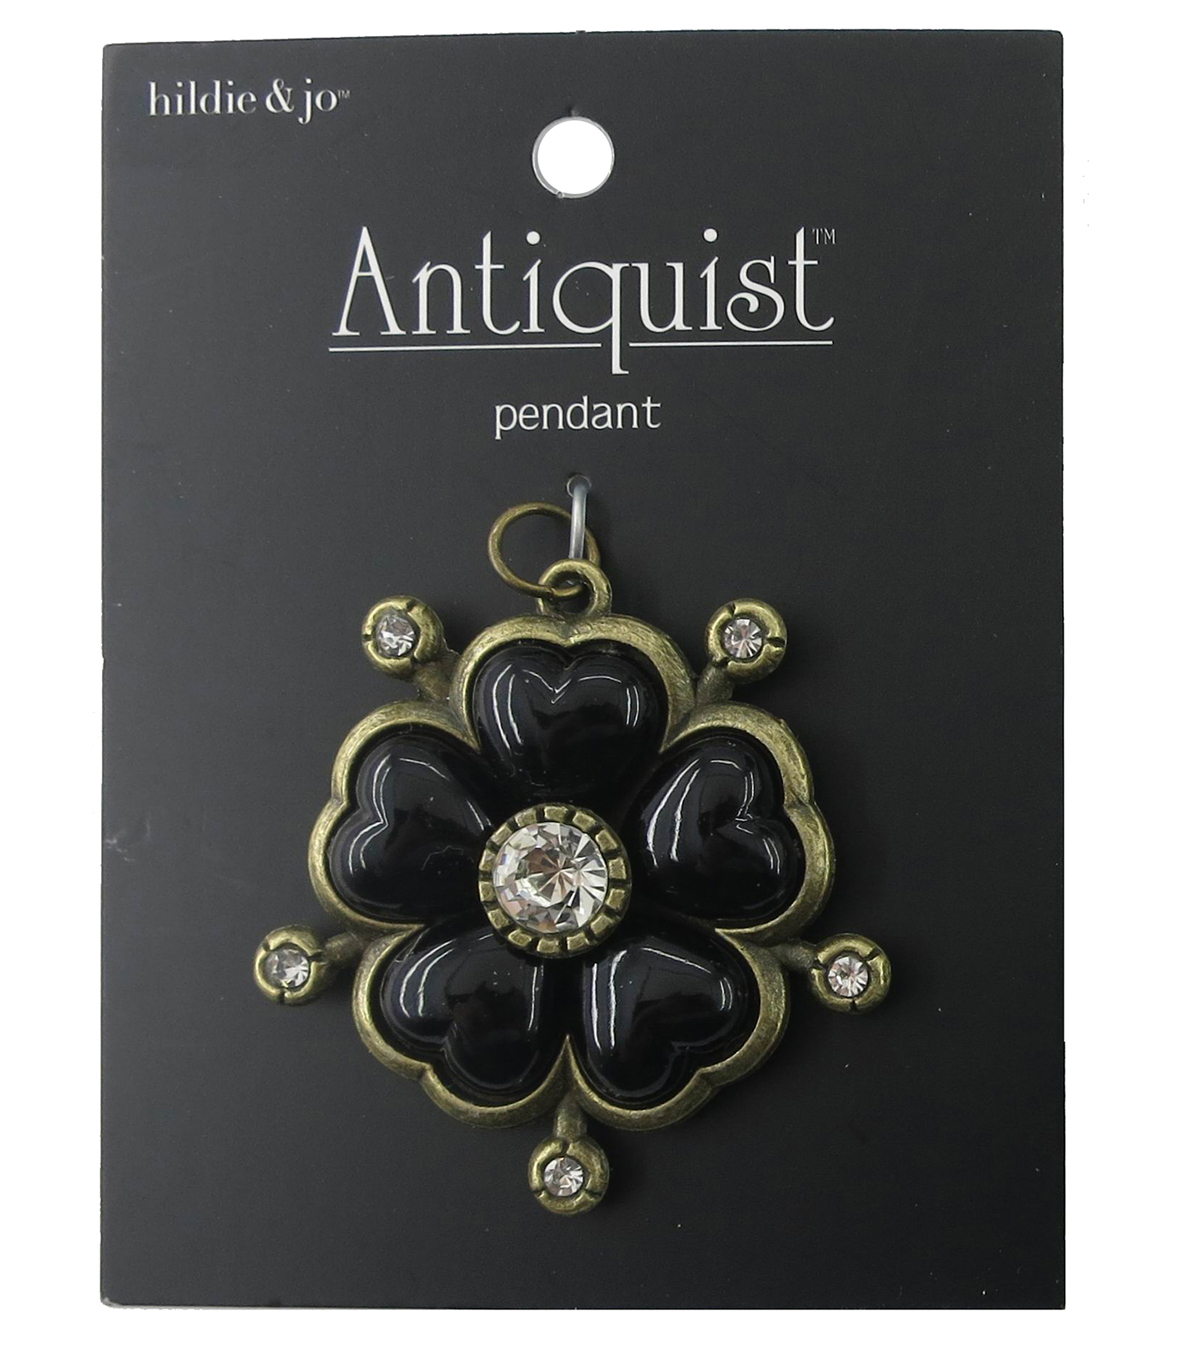 hildie & jo Flower Antique Gold Pendant-Black & Clear Crystals